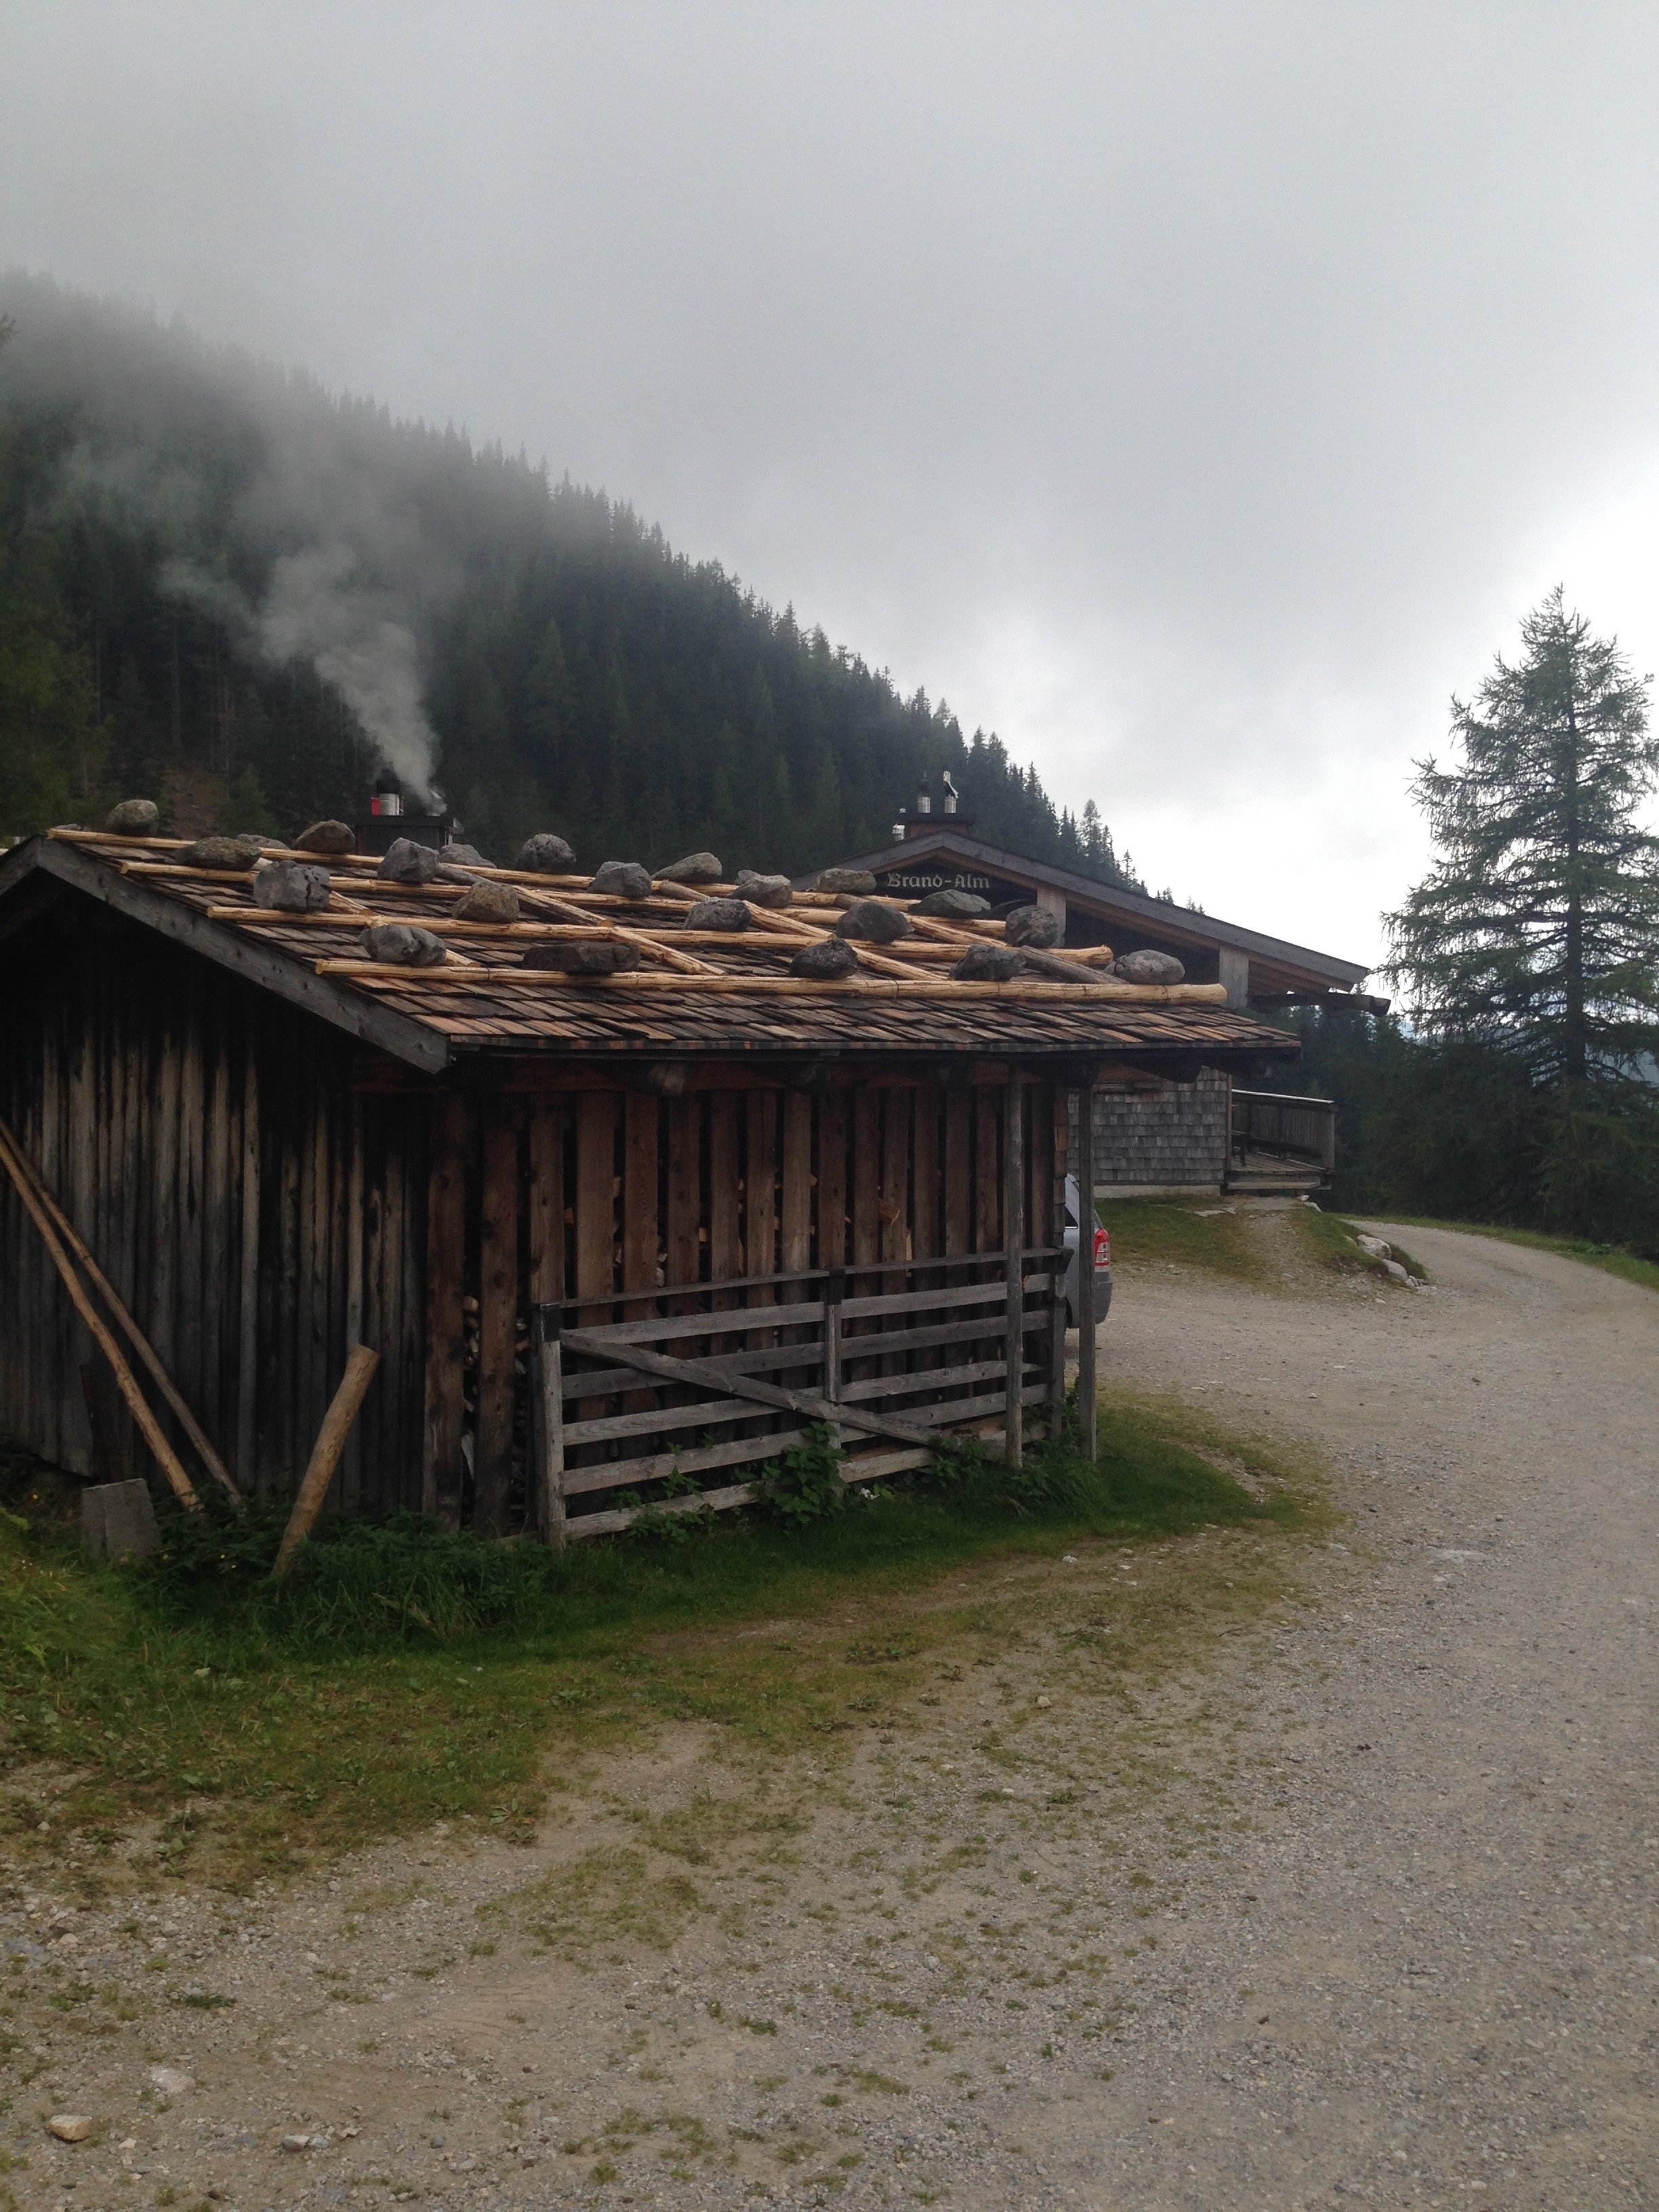 Roofs don't blow away in Austria.